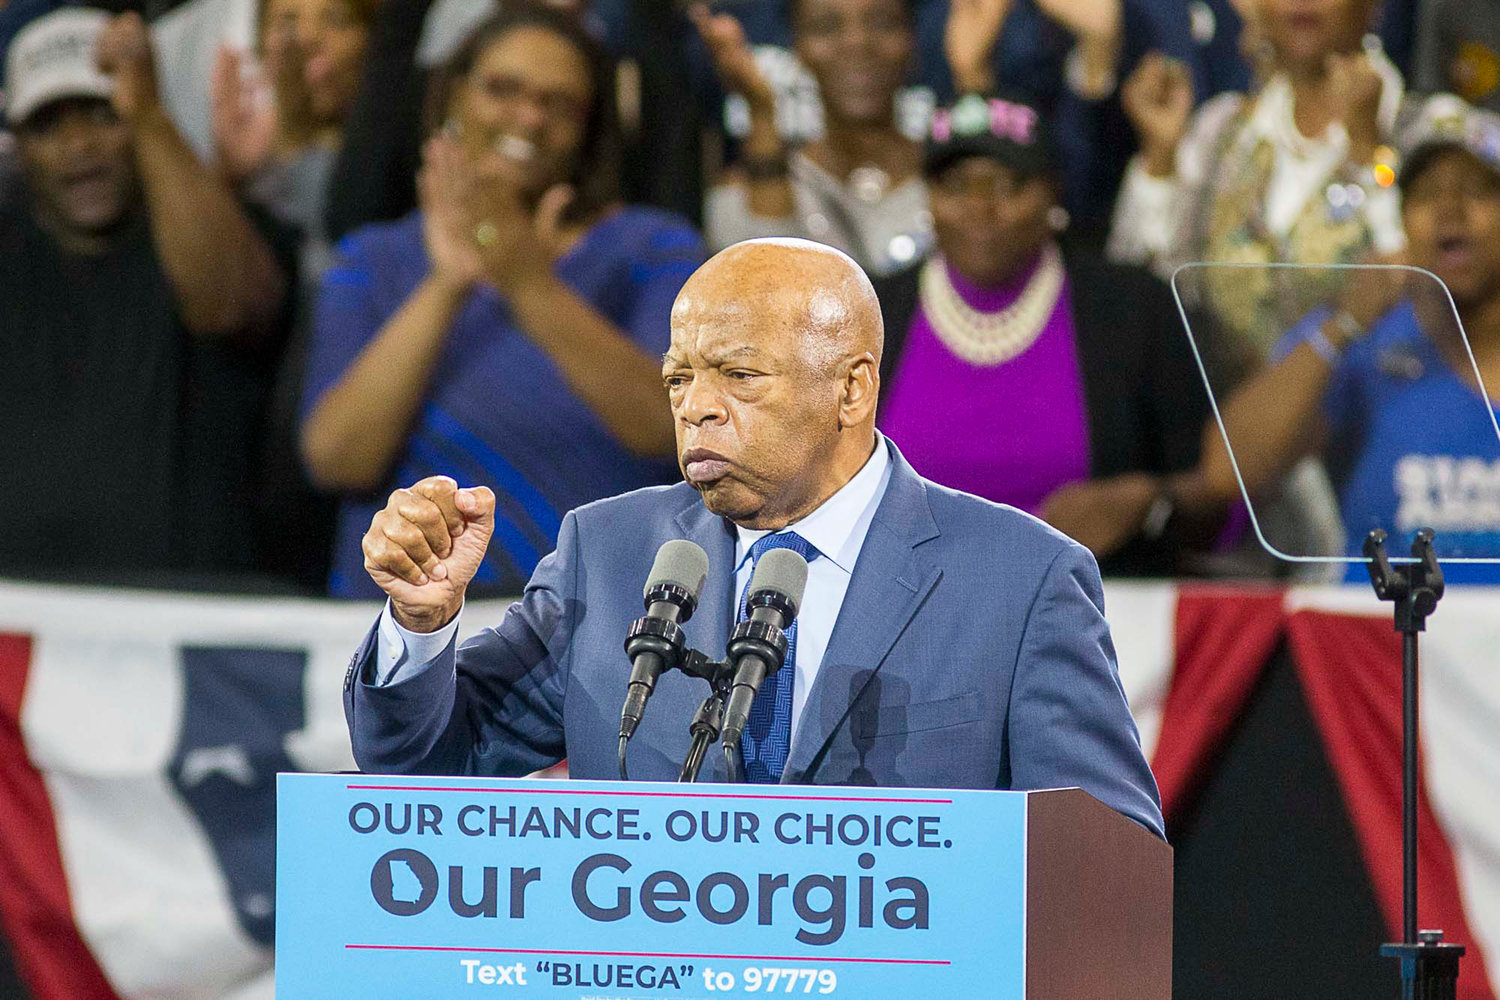 U.S. Rep. John Lewis speaks during a rally for gubernatorial candidate Stacey Abrams in Forbes Arena at Morehouse College in Macon, Ga., on Friday, Nov. 2, 2018. (Alyssa Pointer/Atlanta Journal-Constitution/TNS)